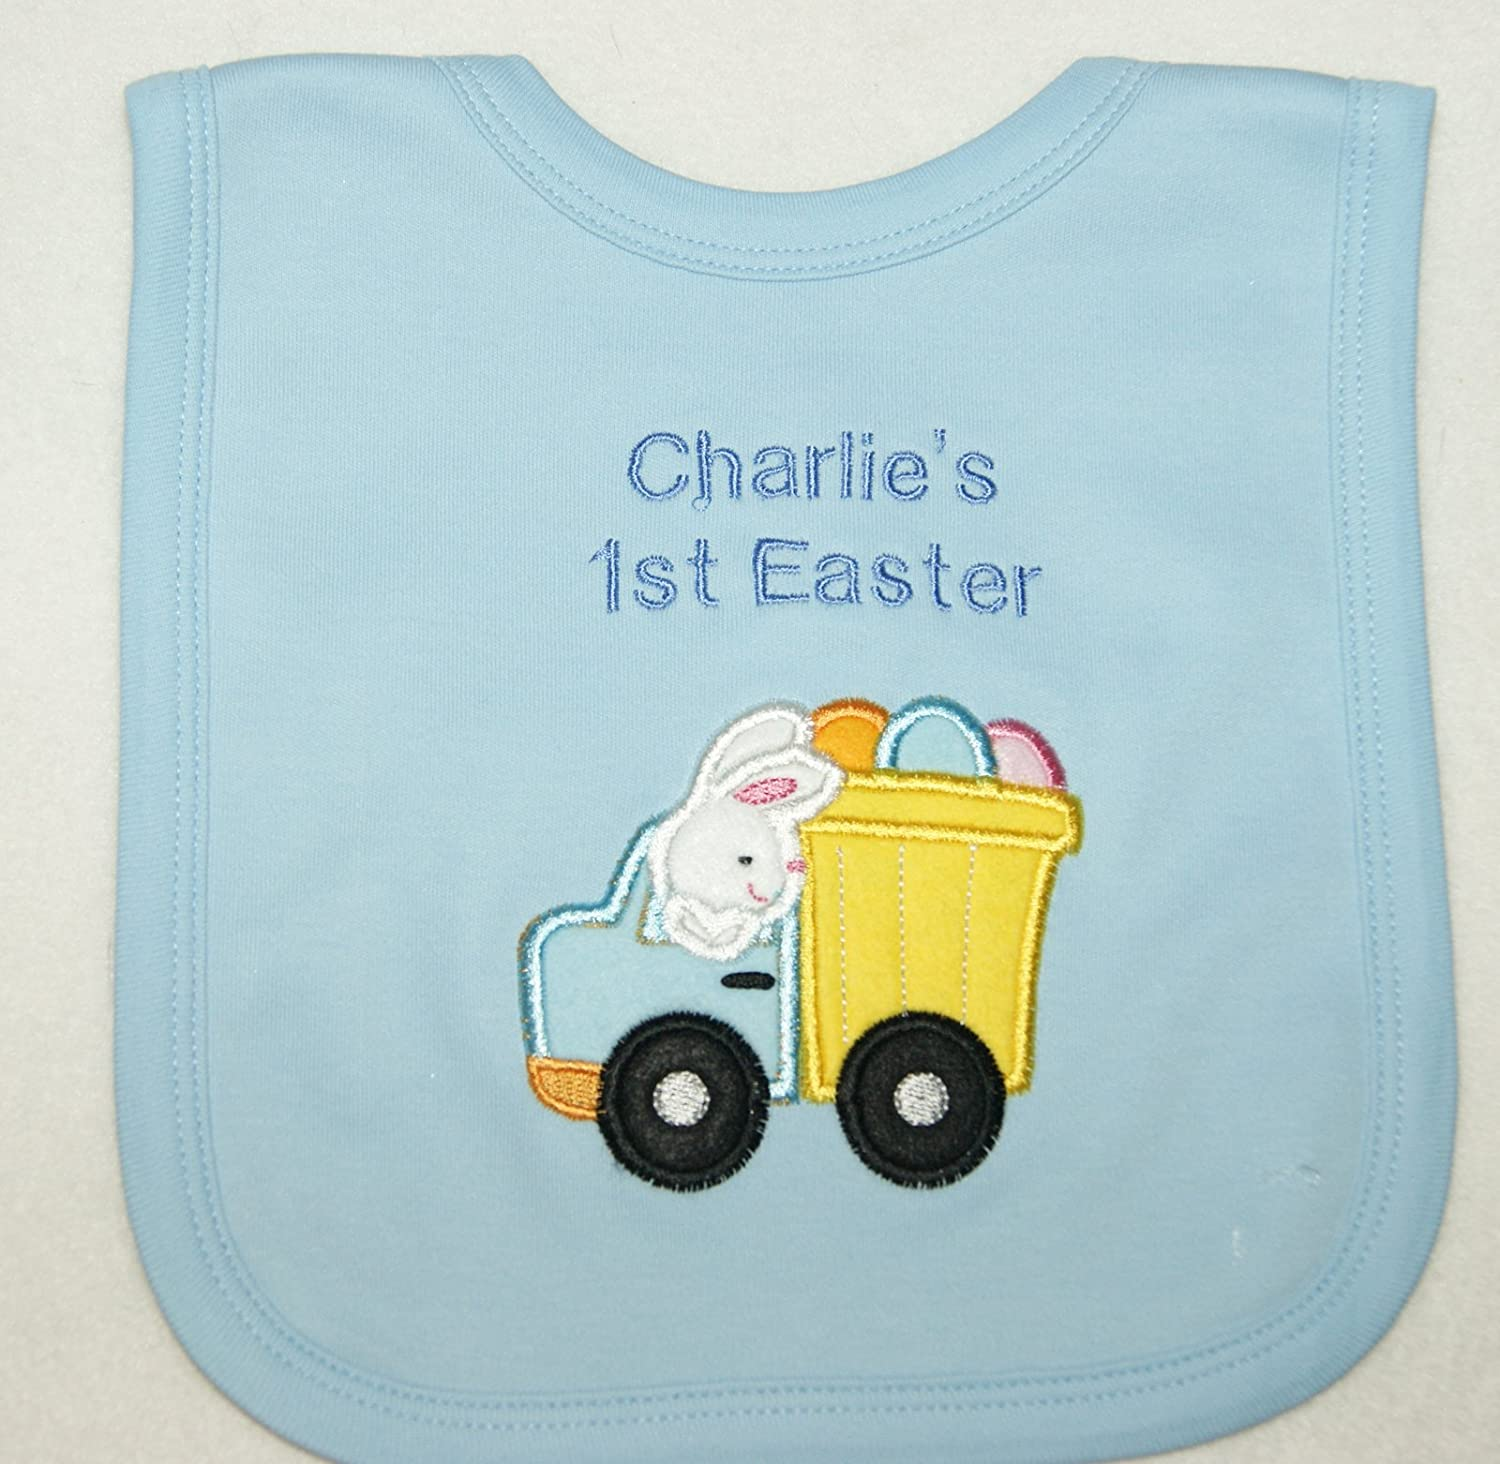 Boys Blue Embroidered Design Any Name Personalised First Christmas Baby Bib